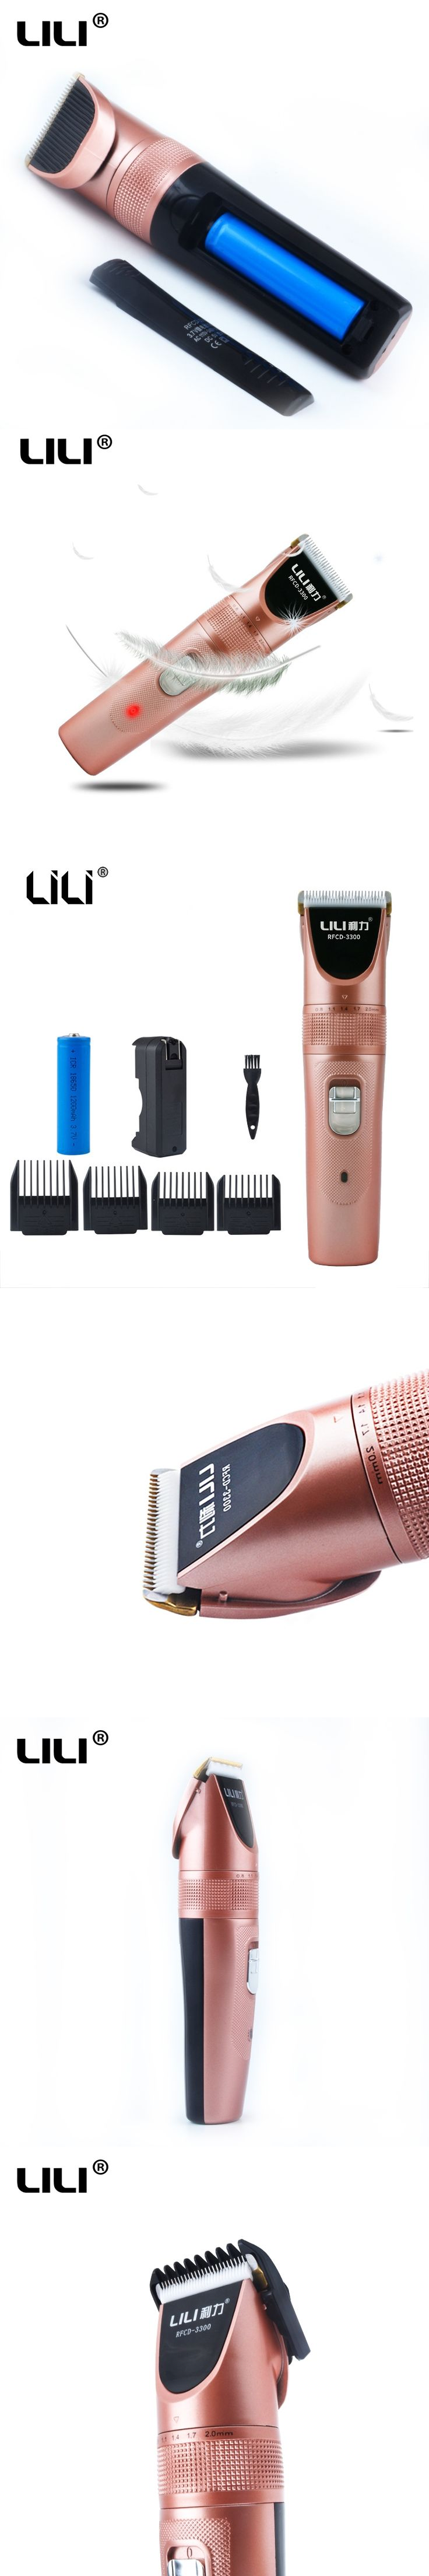 LILI rechargeable Hair Clipper Trimmer Charger Electric beard Trimmer Styling Tool Barber Salon hair cut shaving machine for men